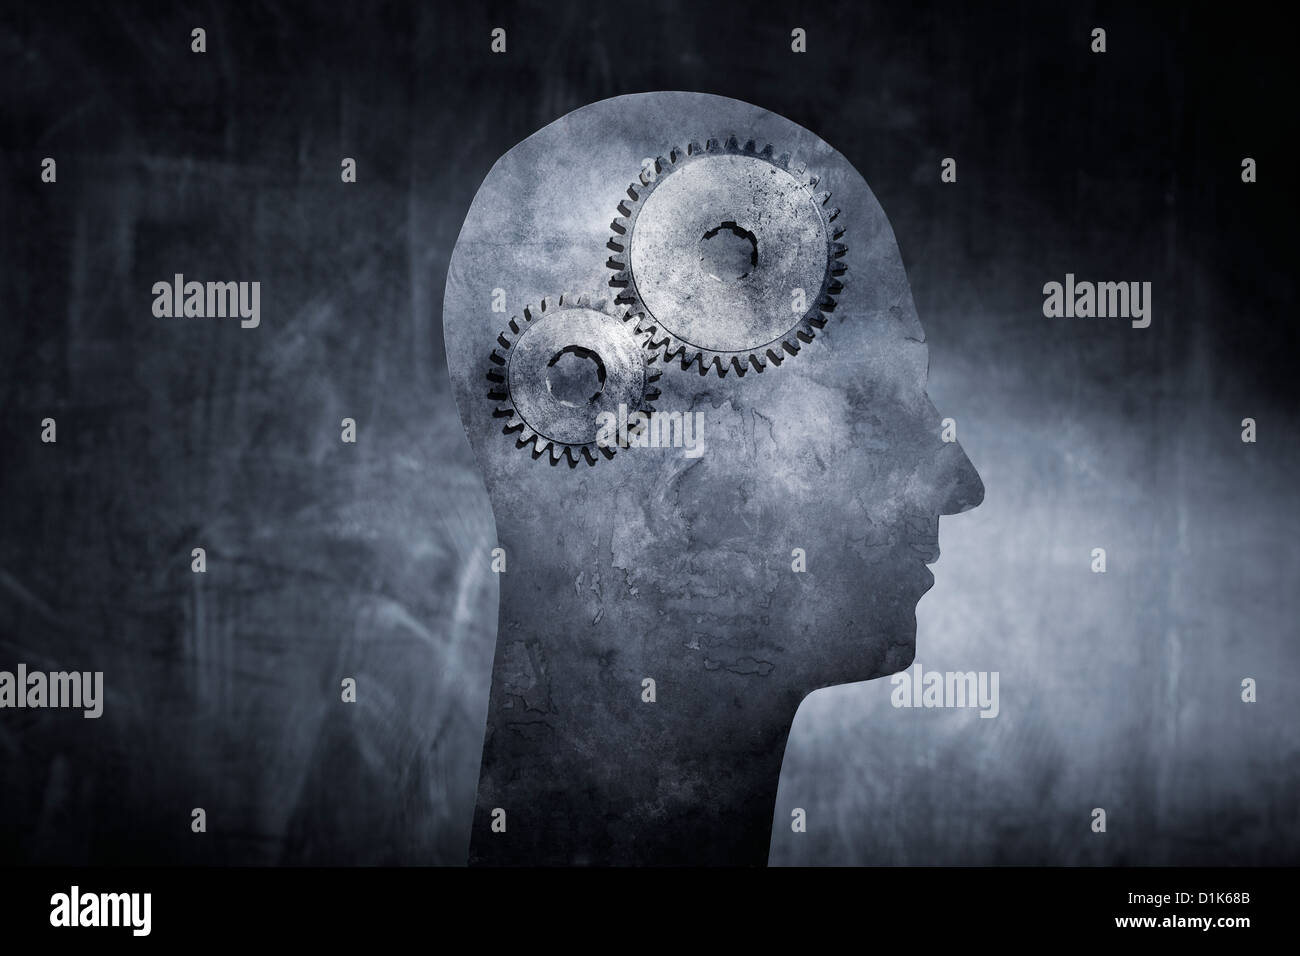 Conceptual image of a head with cog gears as brain. Stock Photo